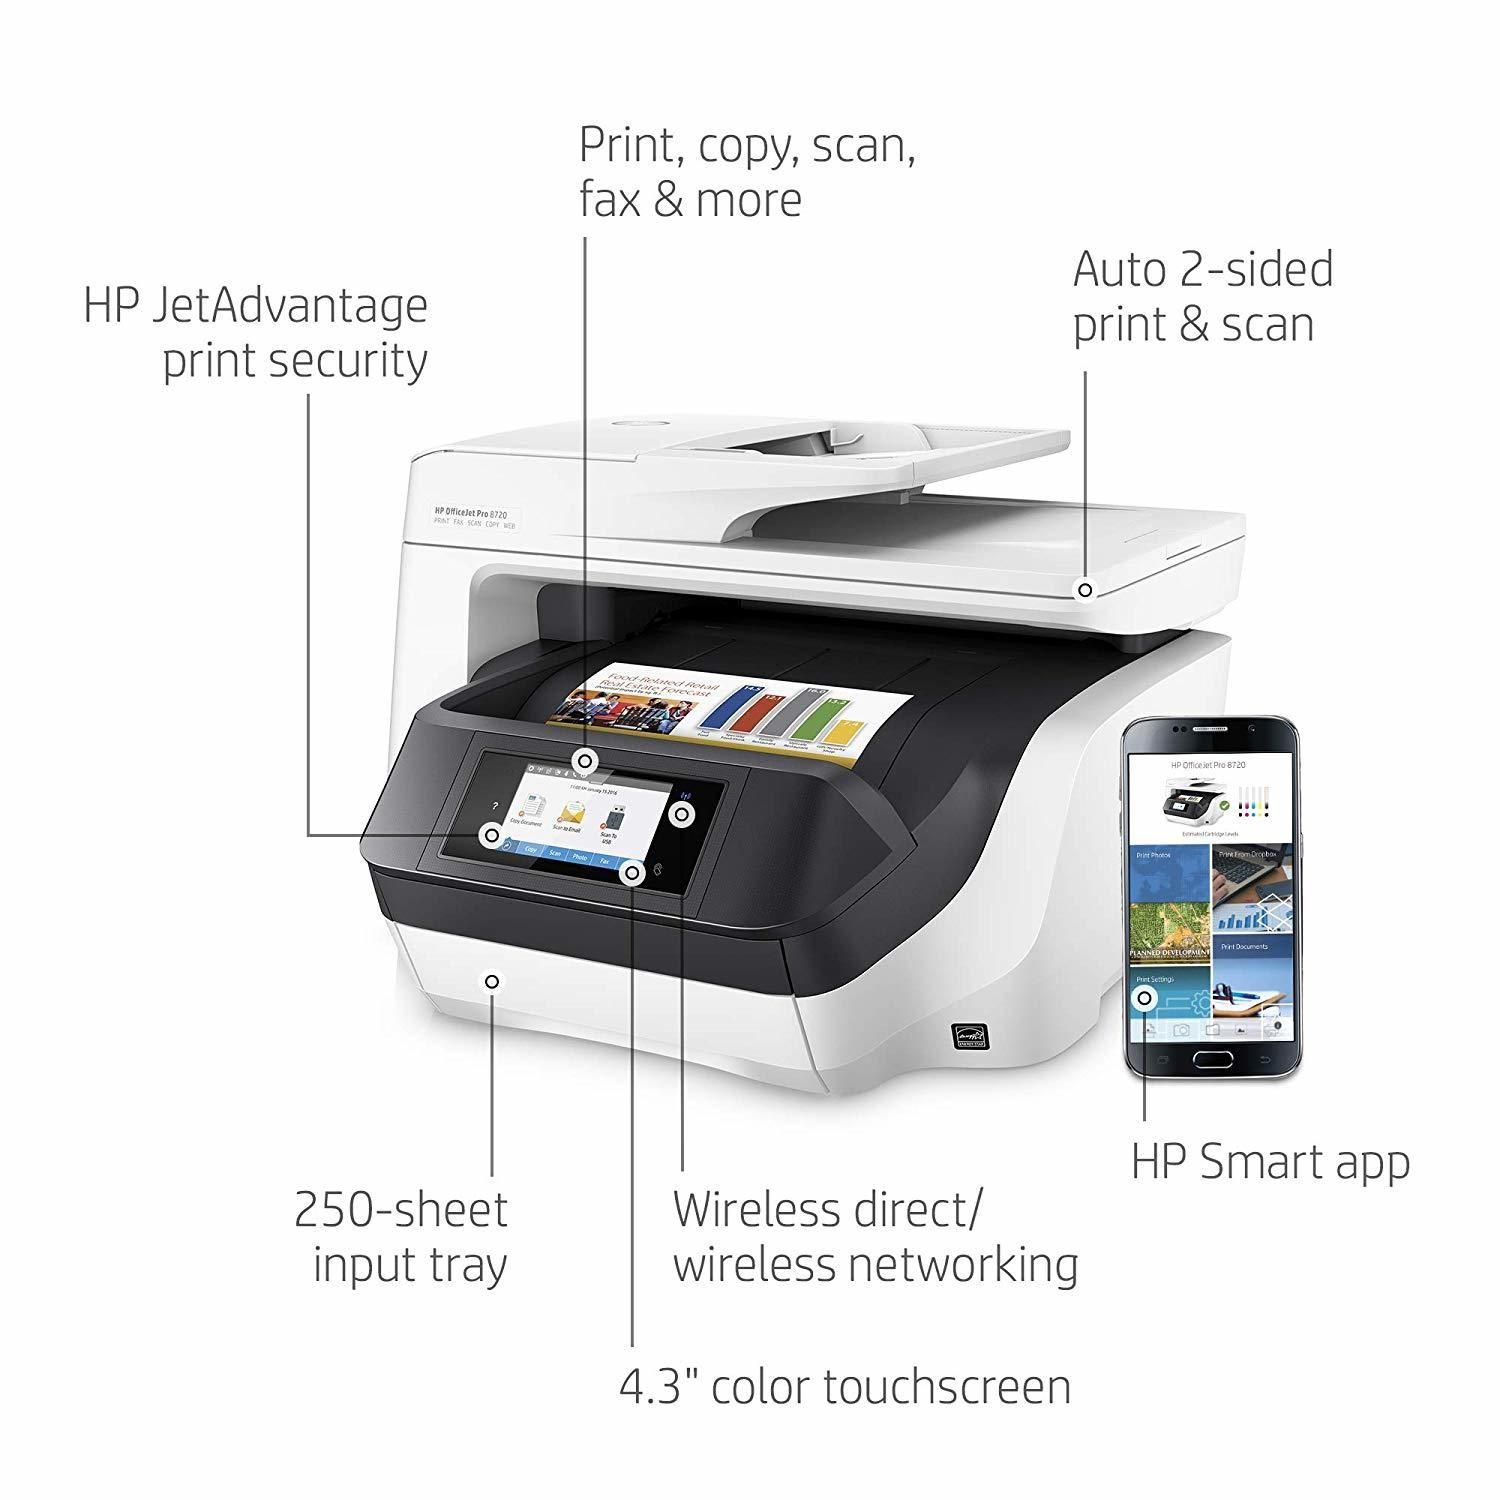 HP OfficeJet Pro 8720 All-in-One Printer, Rs 22400